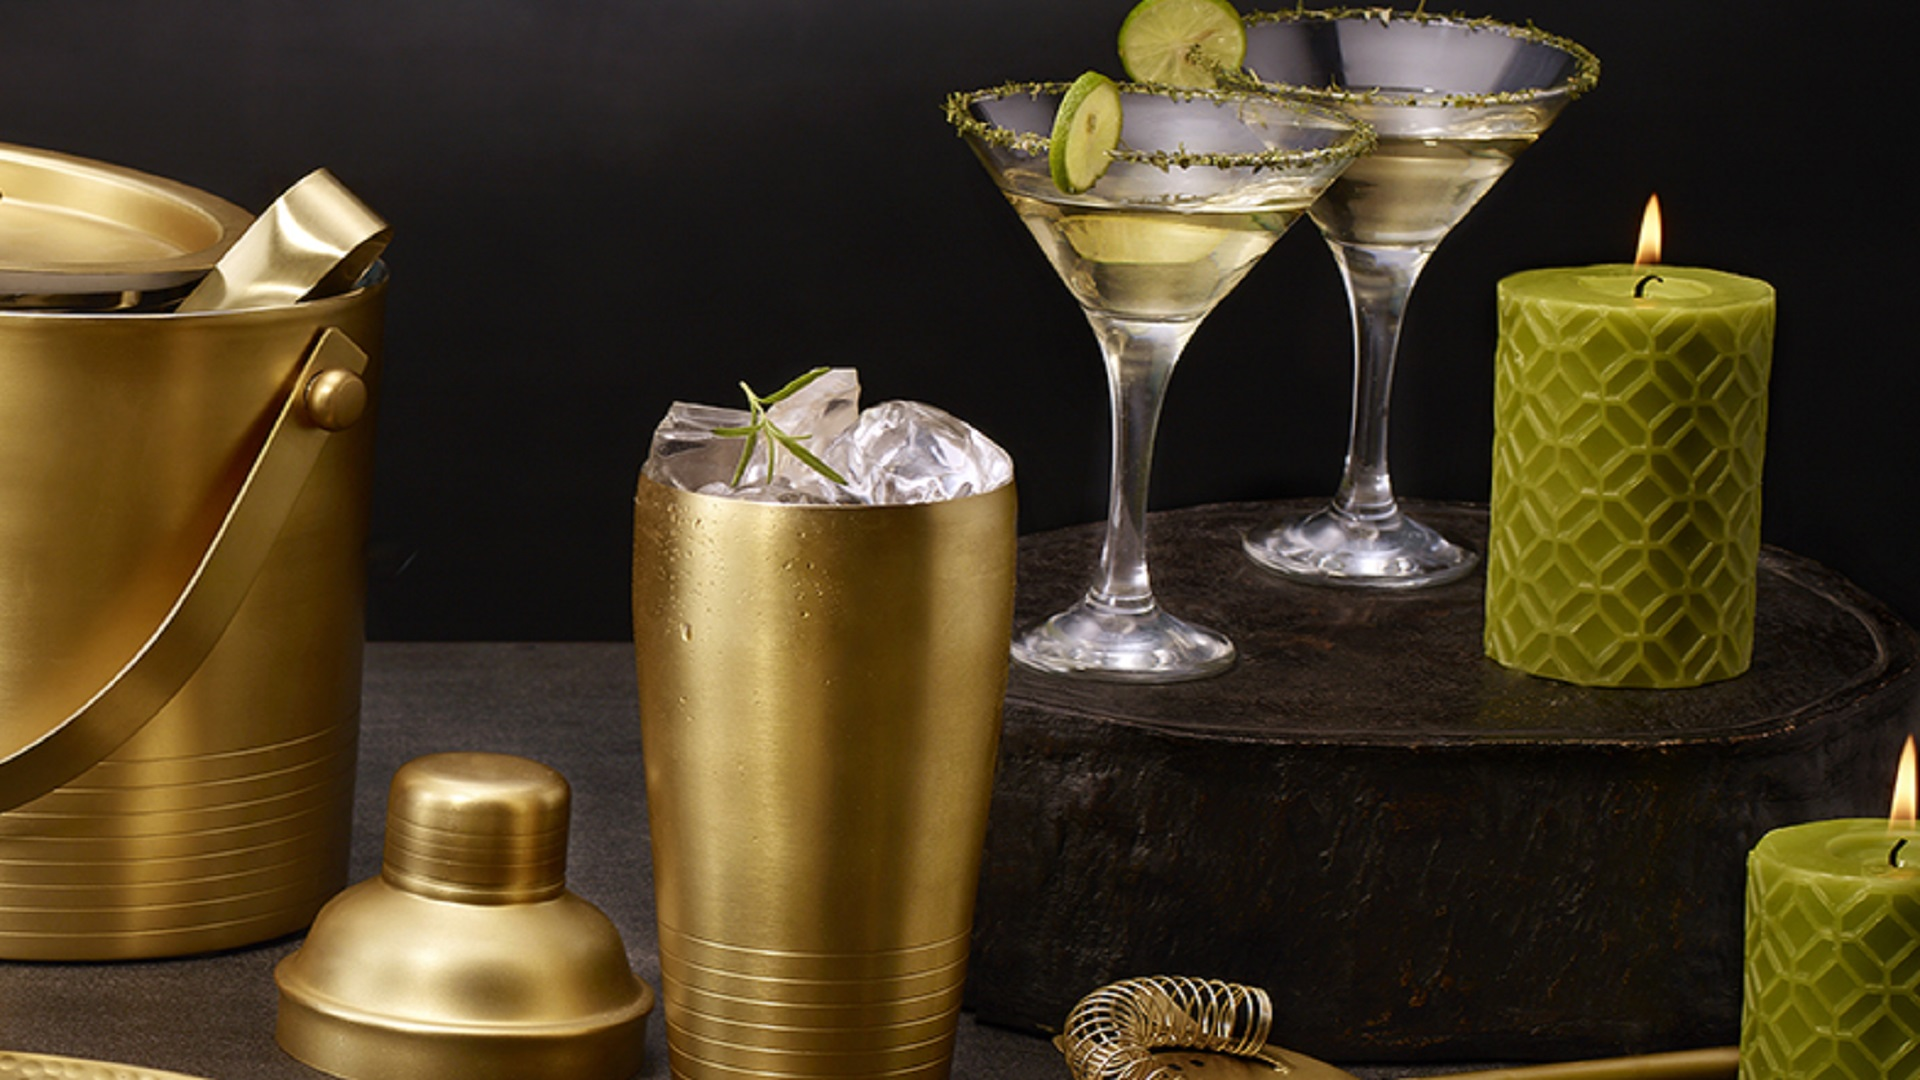 Get cocktail equipment and surprise your partner with the most divine flavors